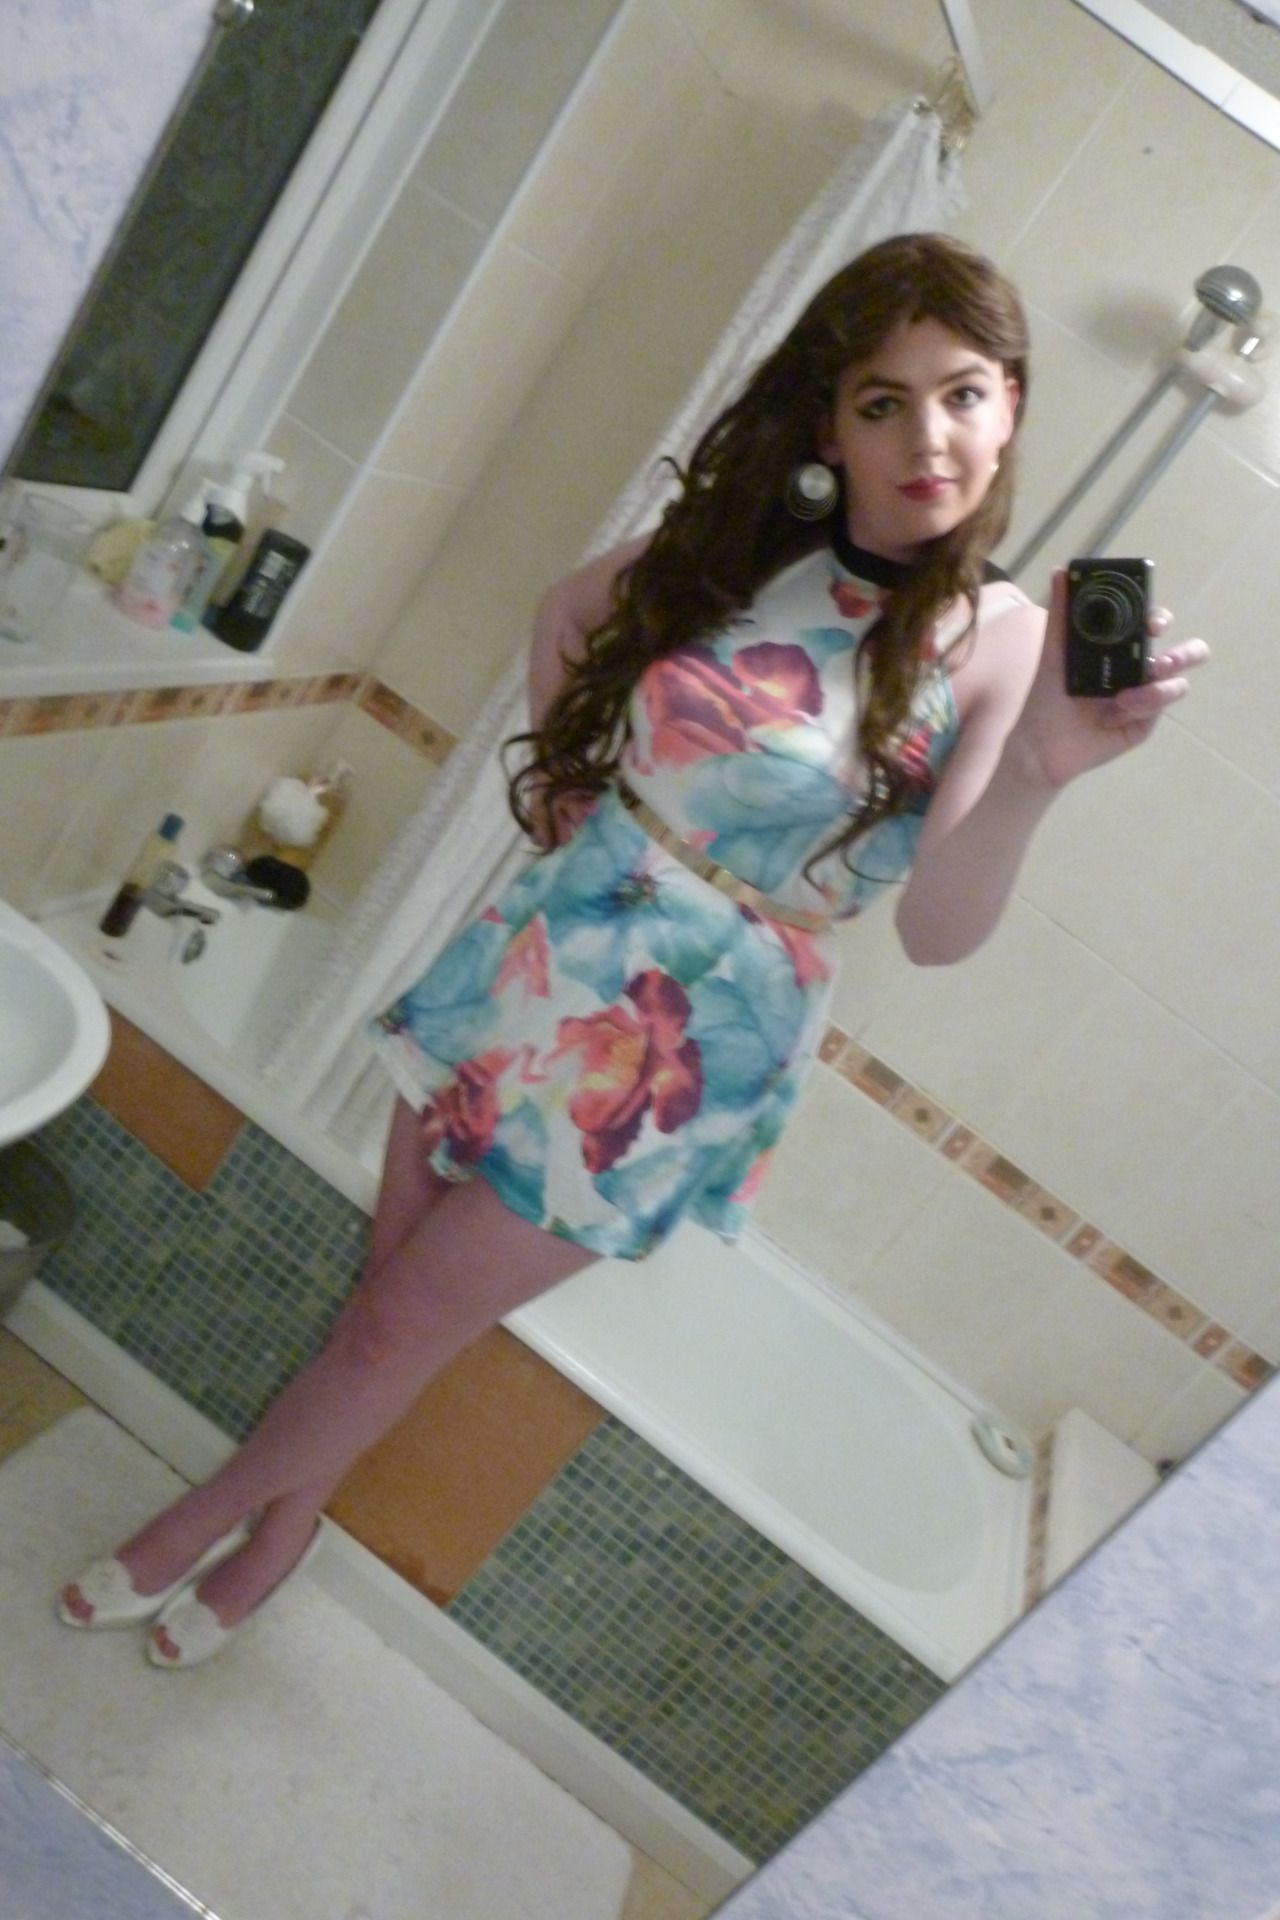 Lucy Is Such A Passable Sissy She Luvs Going To Hang Out At The Mall In This